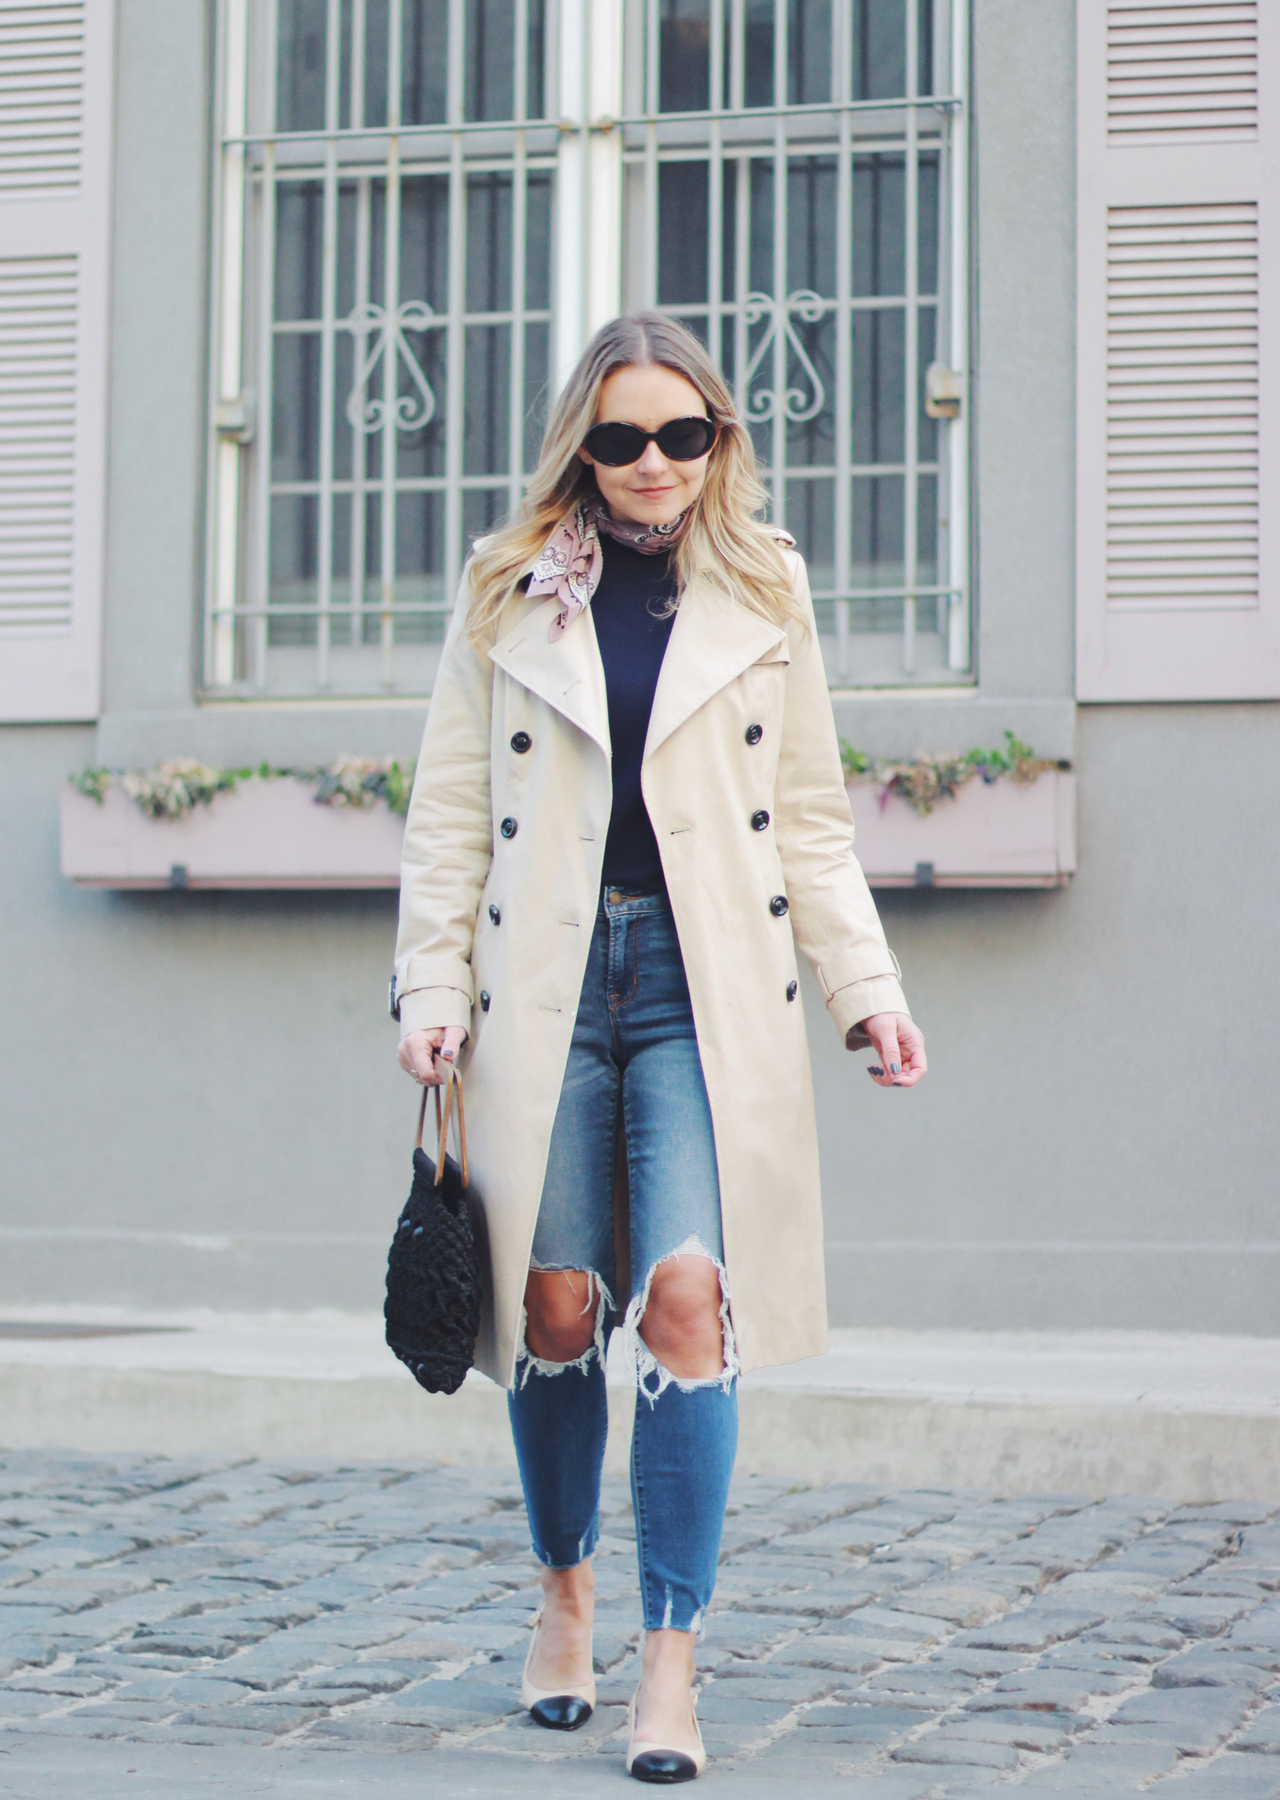 The Steele Maiden: Closet Classics - Trench Coat and Distressed Denim